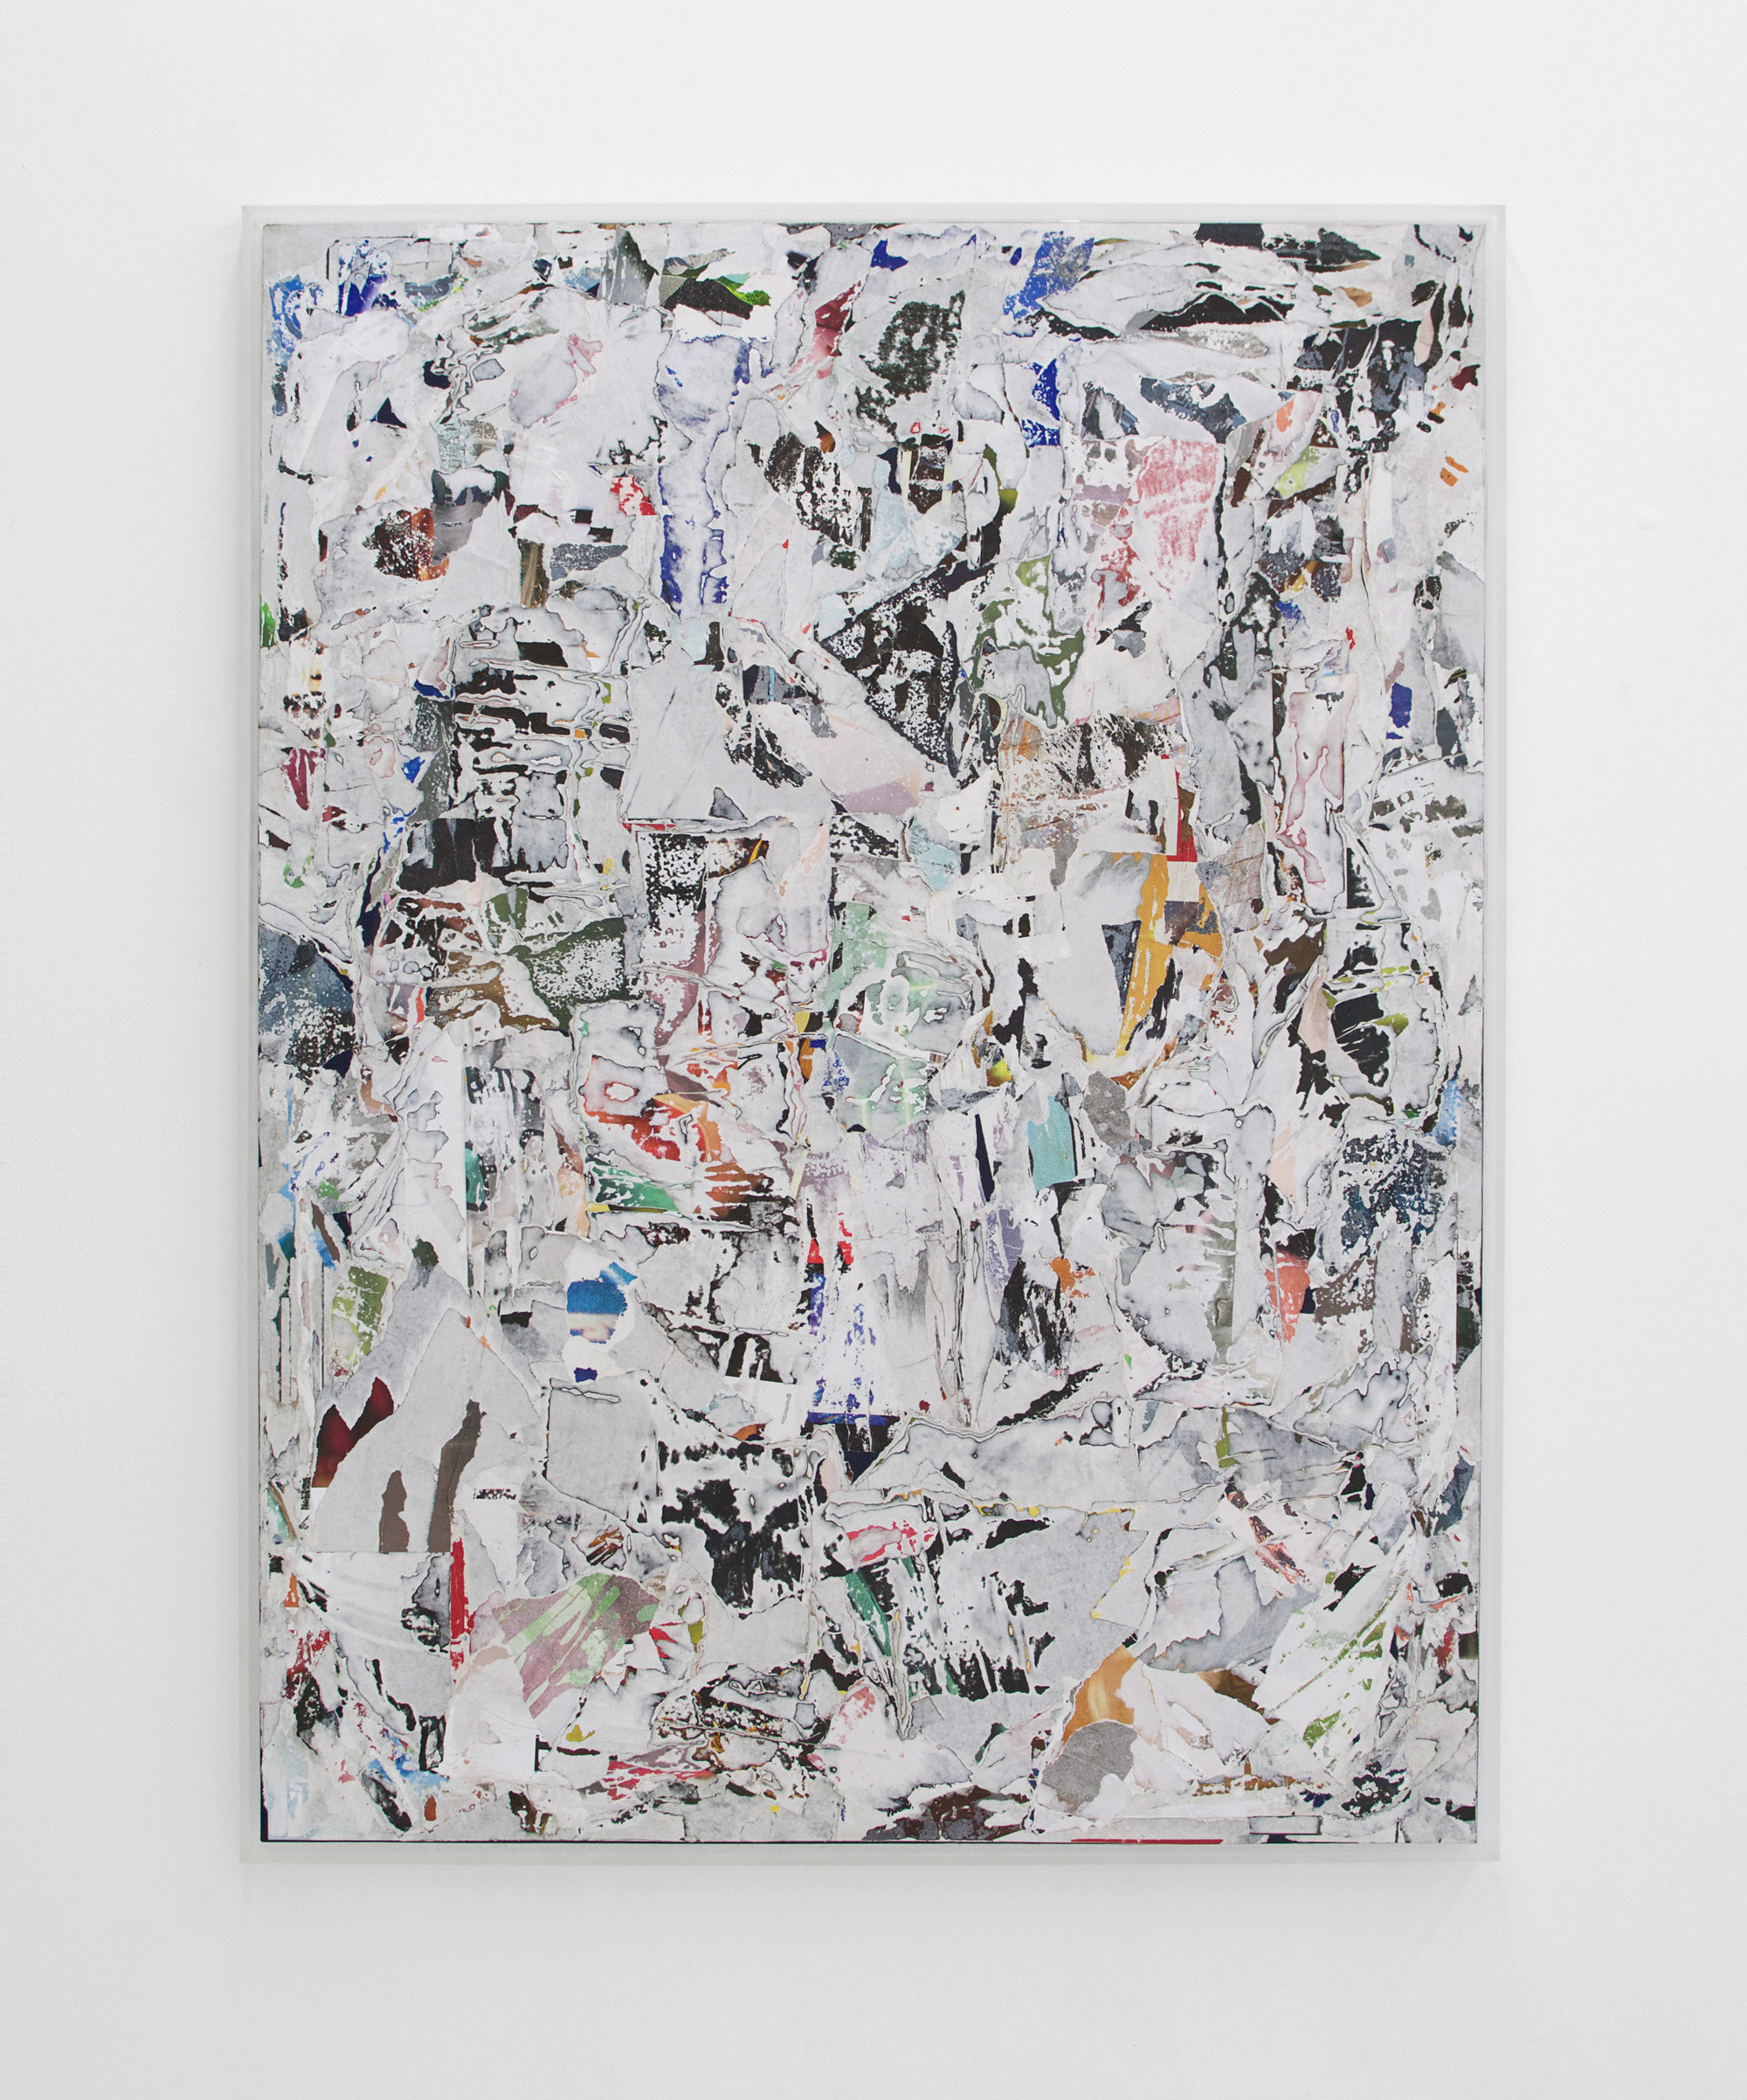 ANDREW LAUMANN   Untitled (Blind Mind) , 2016, Acrylic paint, methylcellulose, paper, on panel in acrylic frame